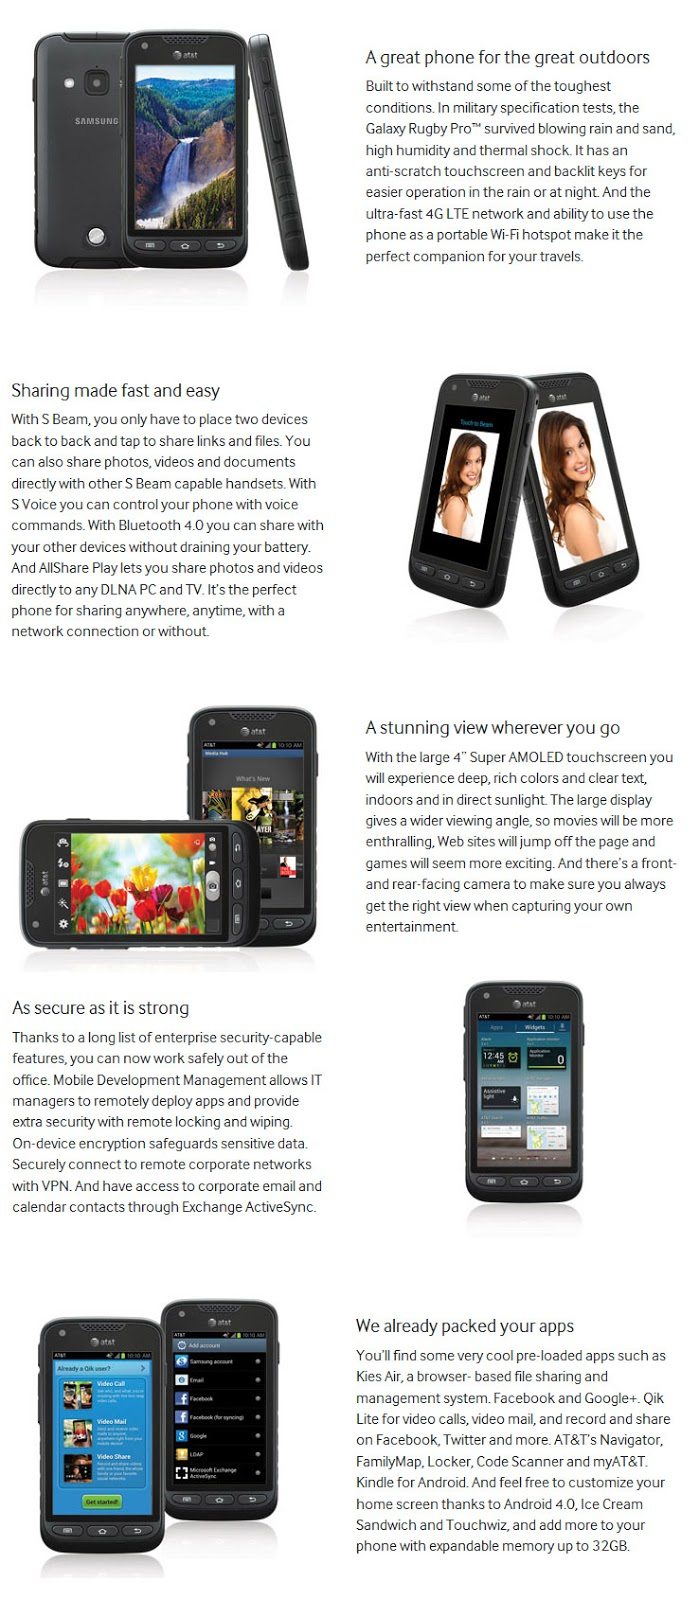 Hp Outdoorponsel Smartphone Android Adventure Harga Murah Terbaik New Samsung Galaxy Rugby Pro I547 4g Lte Outdoor